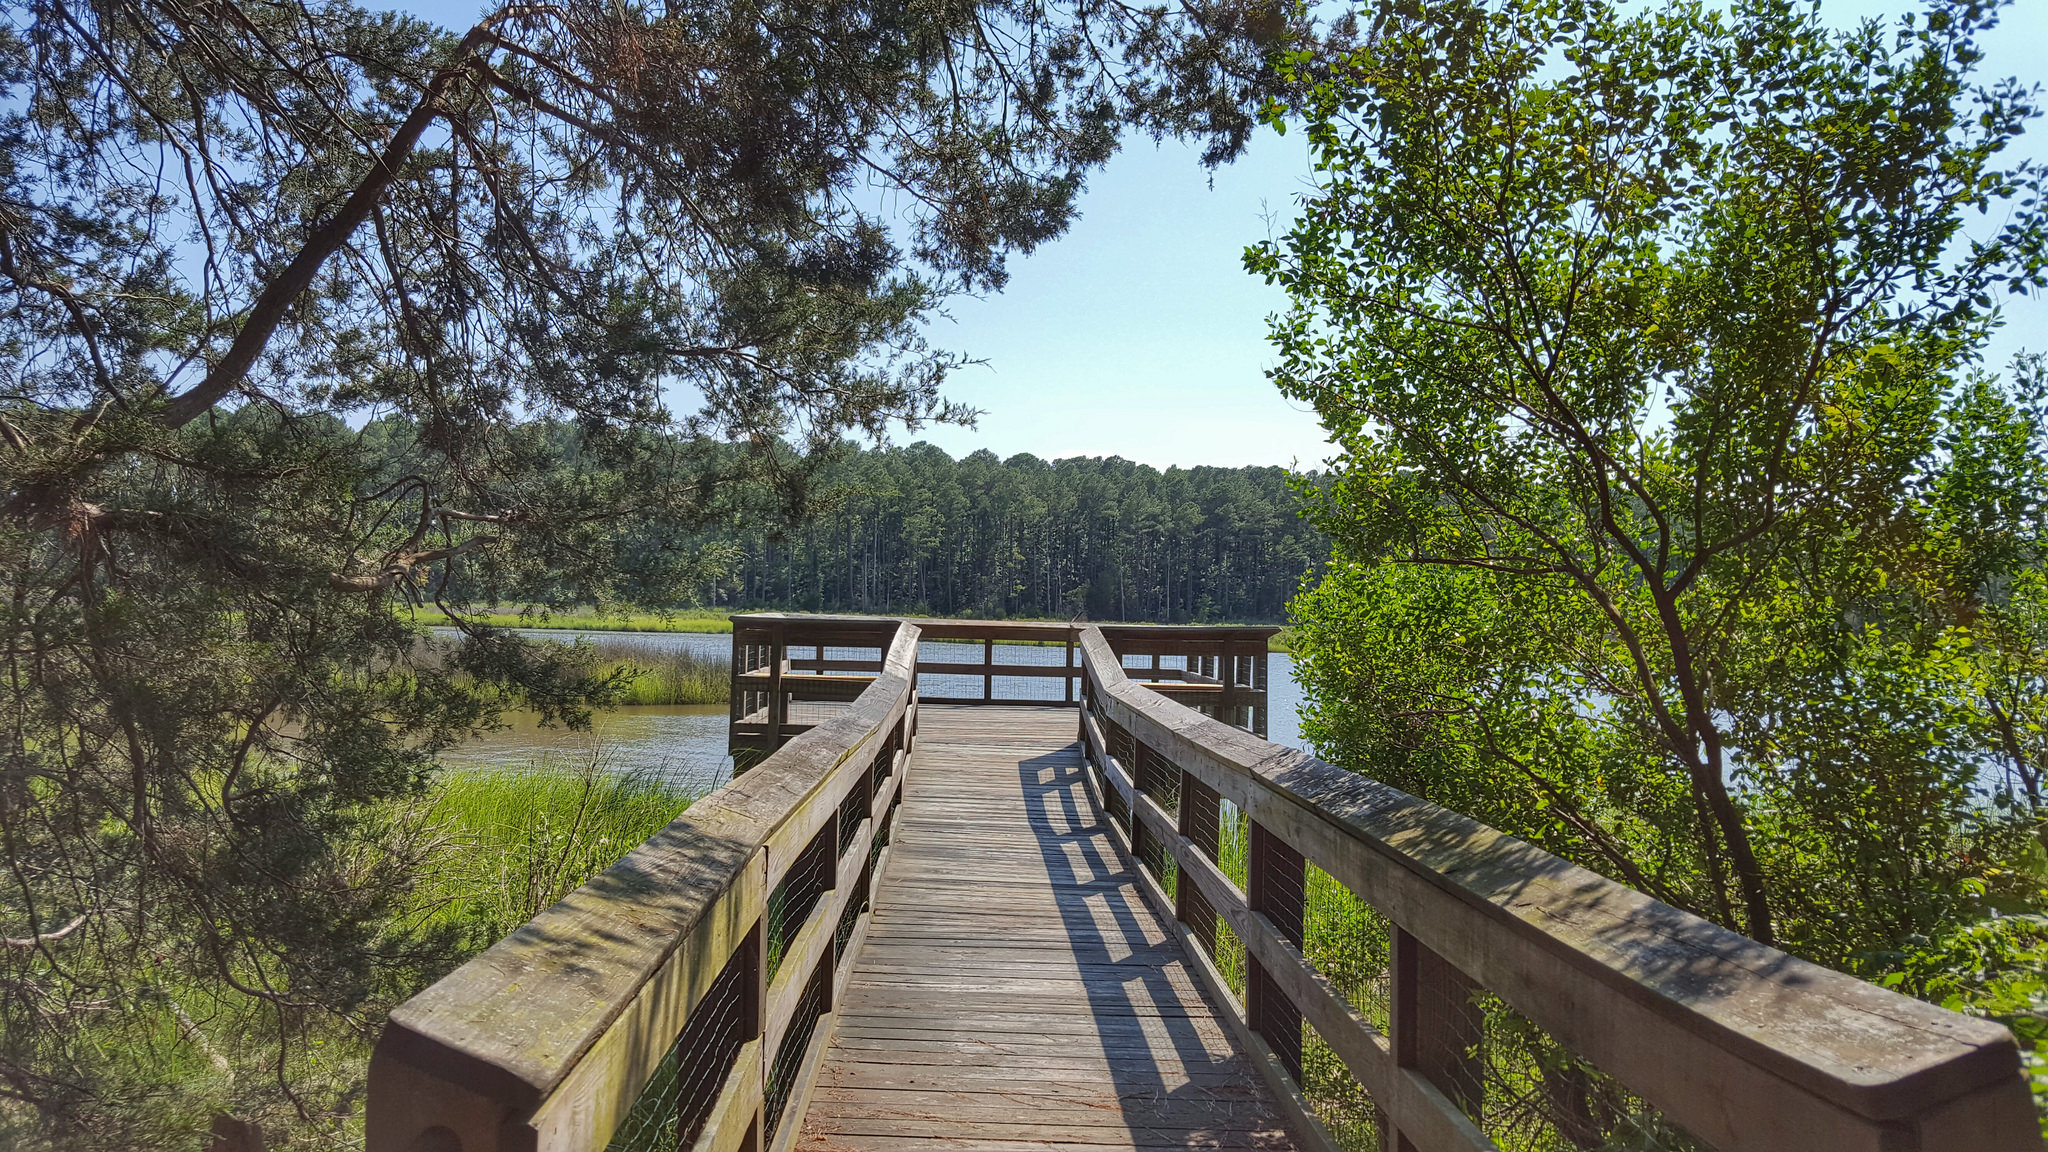 10 Ways to Spend a Family Weekend at Belle Isle State Park